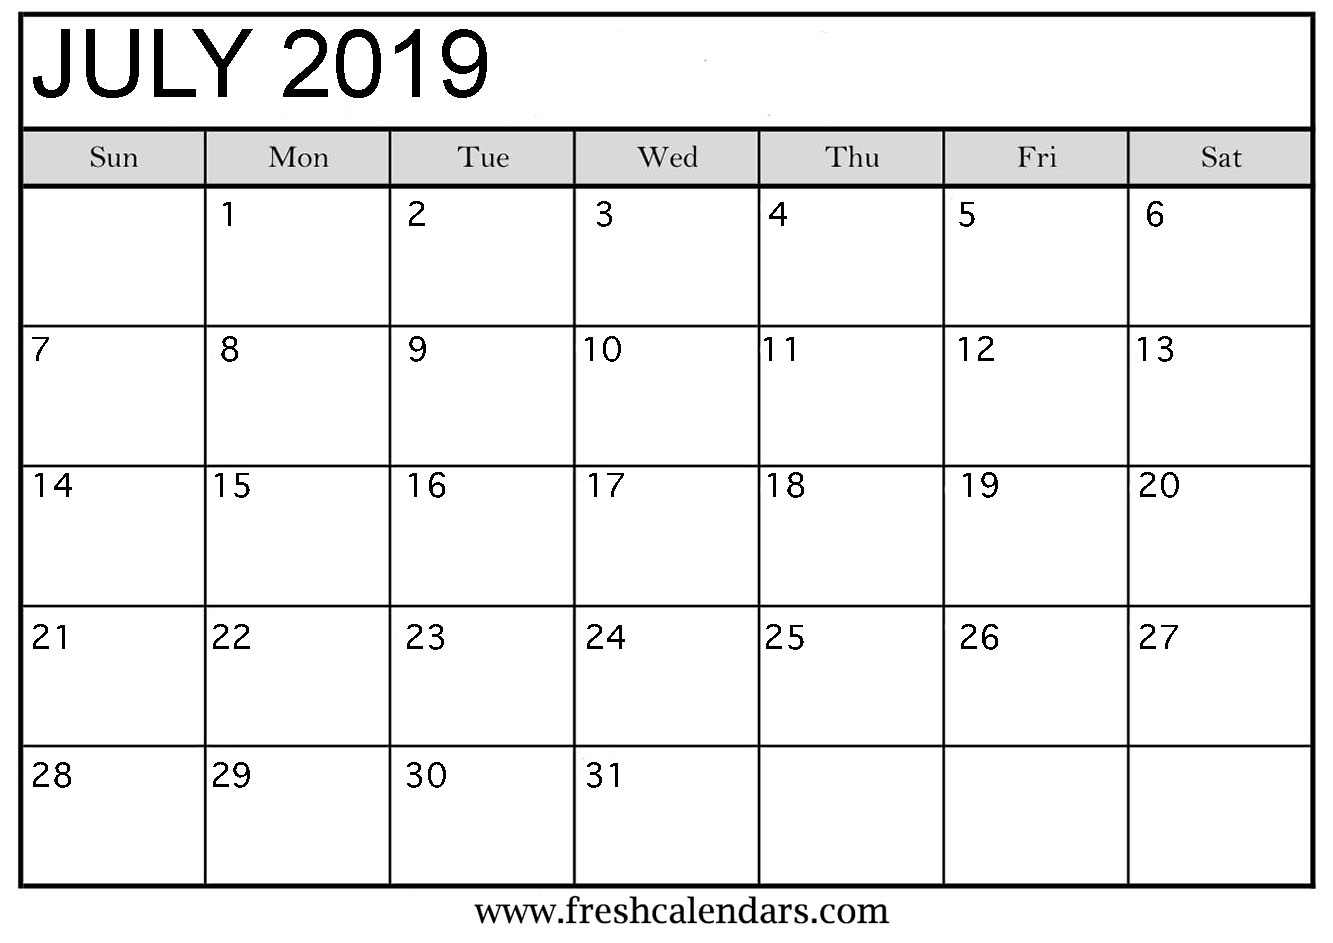 2019 Online Calendar Template July 2019 Calendar Printable   Fresh Calendars